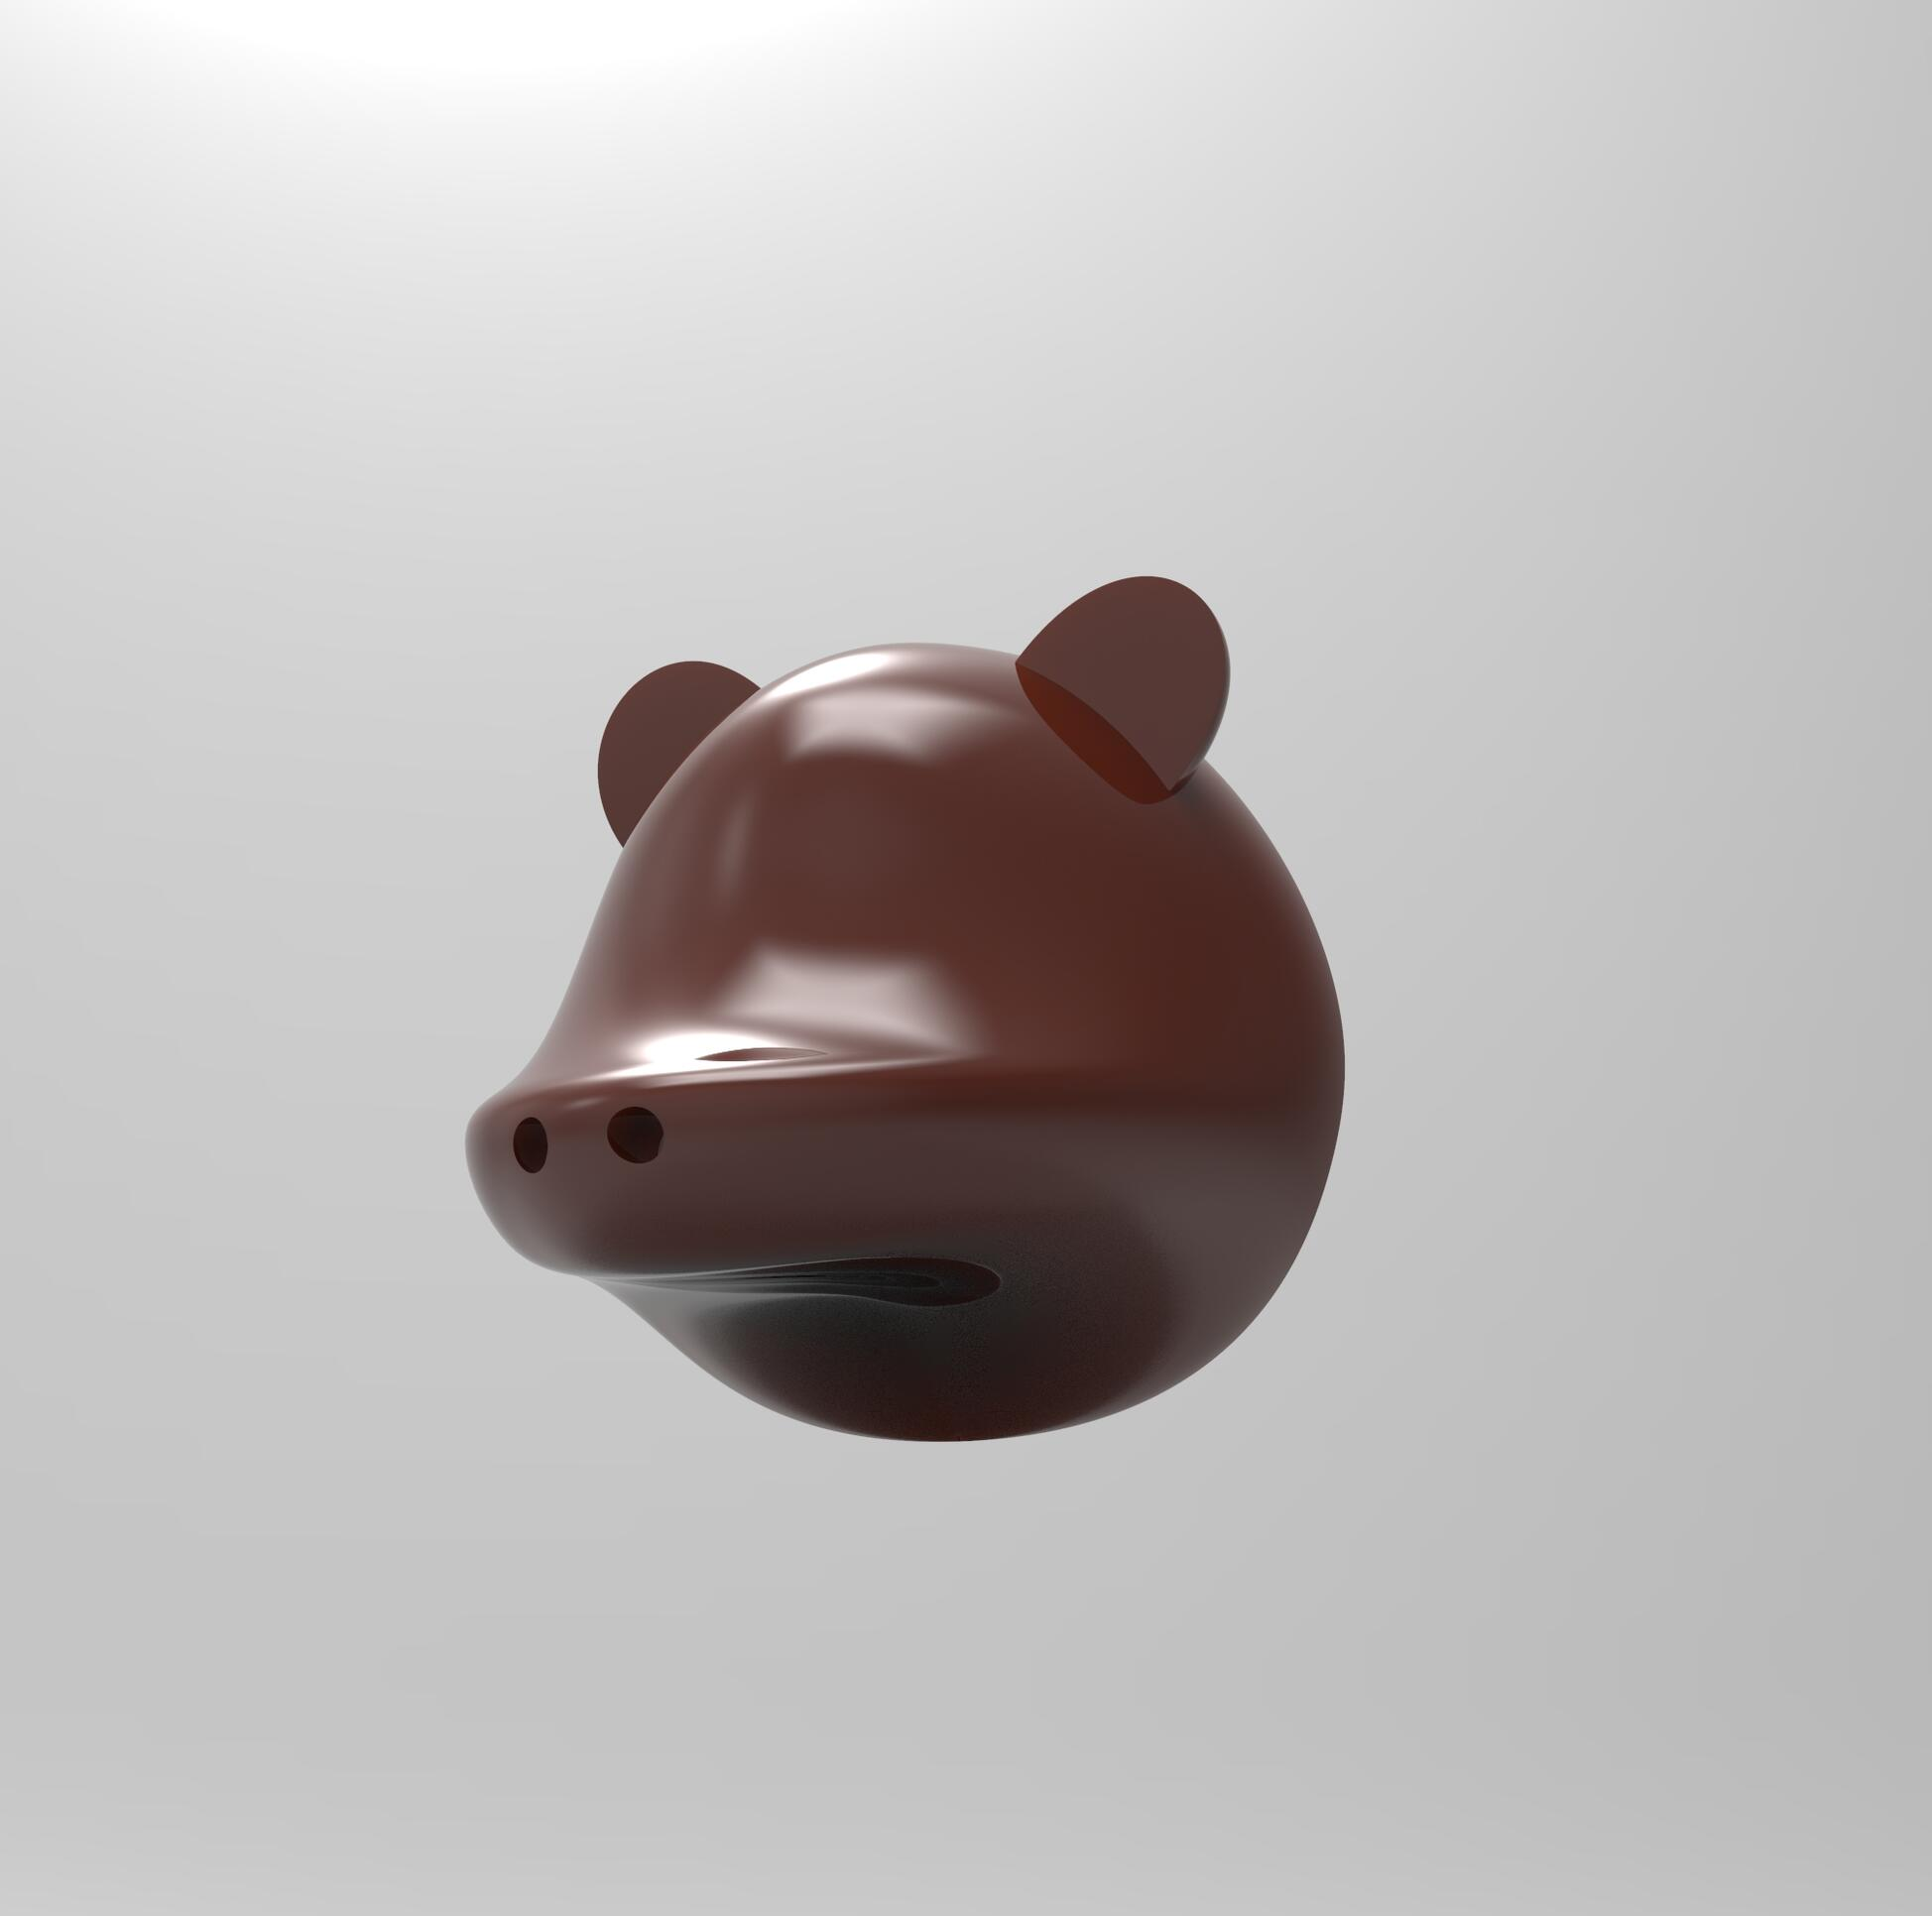 3D rendered model of a bear head. ; Rosie Colacino